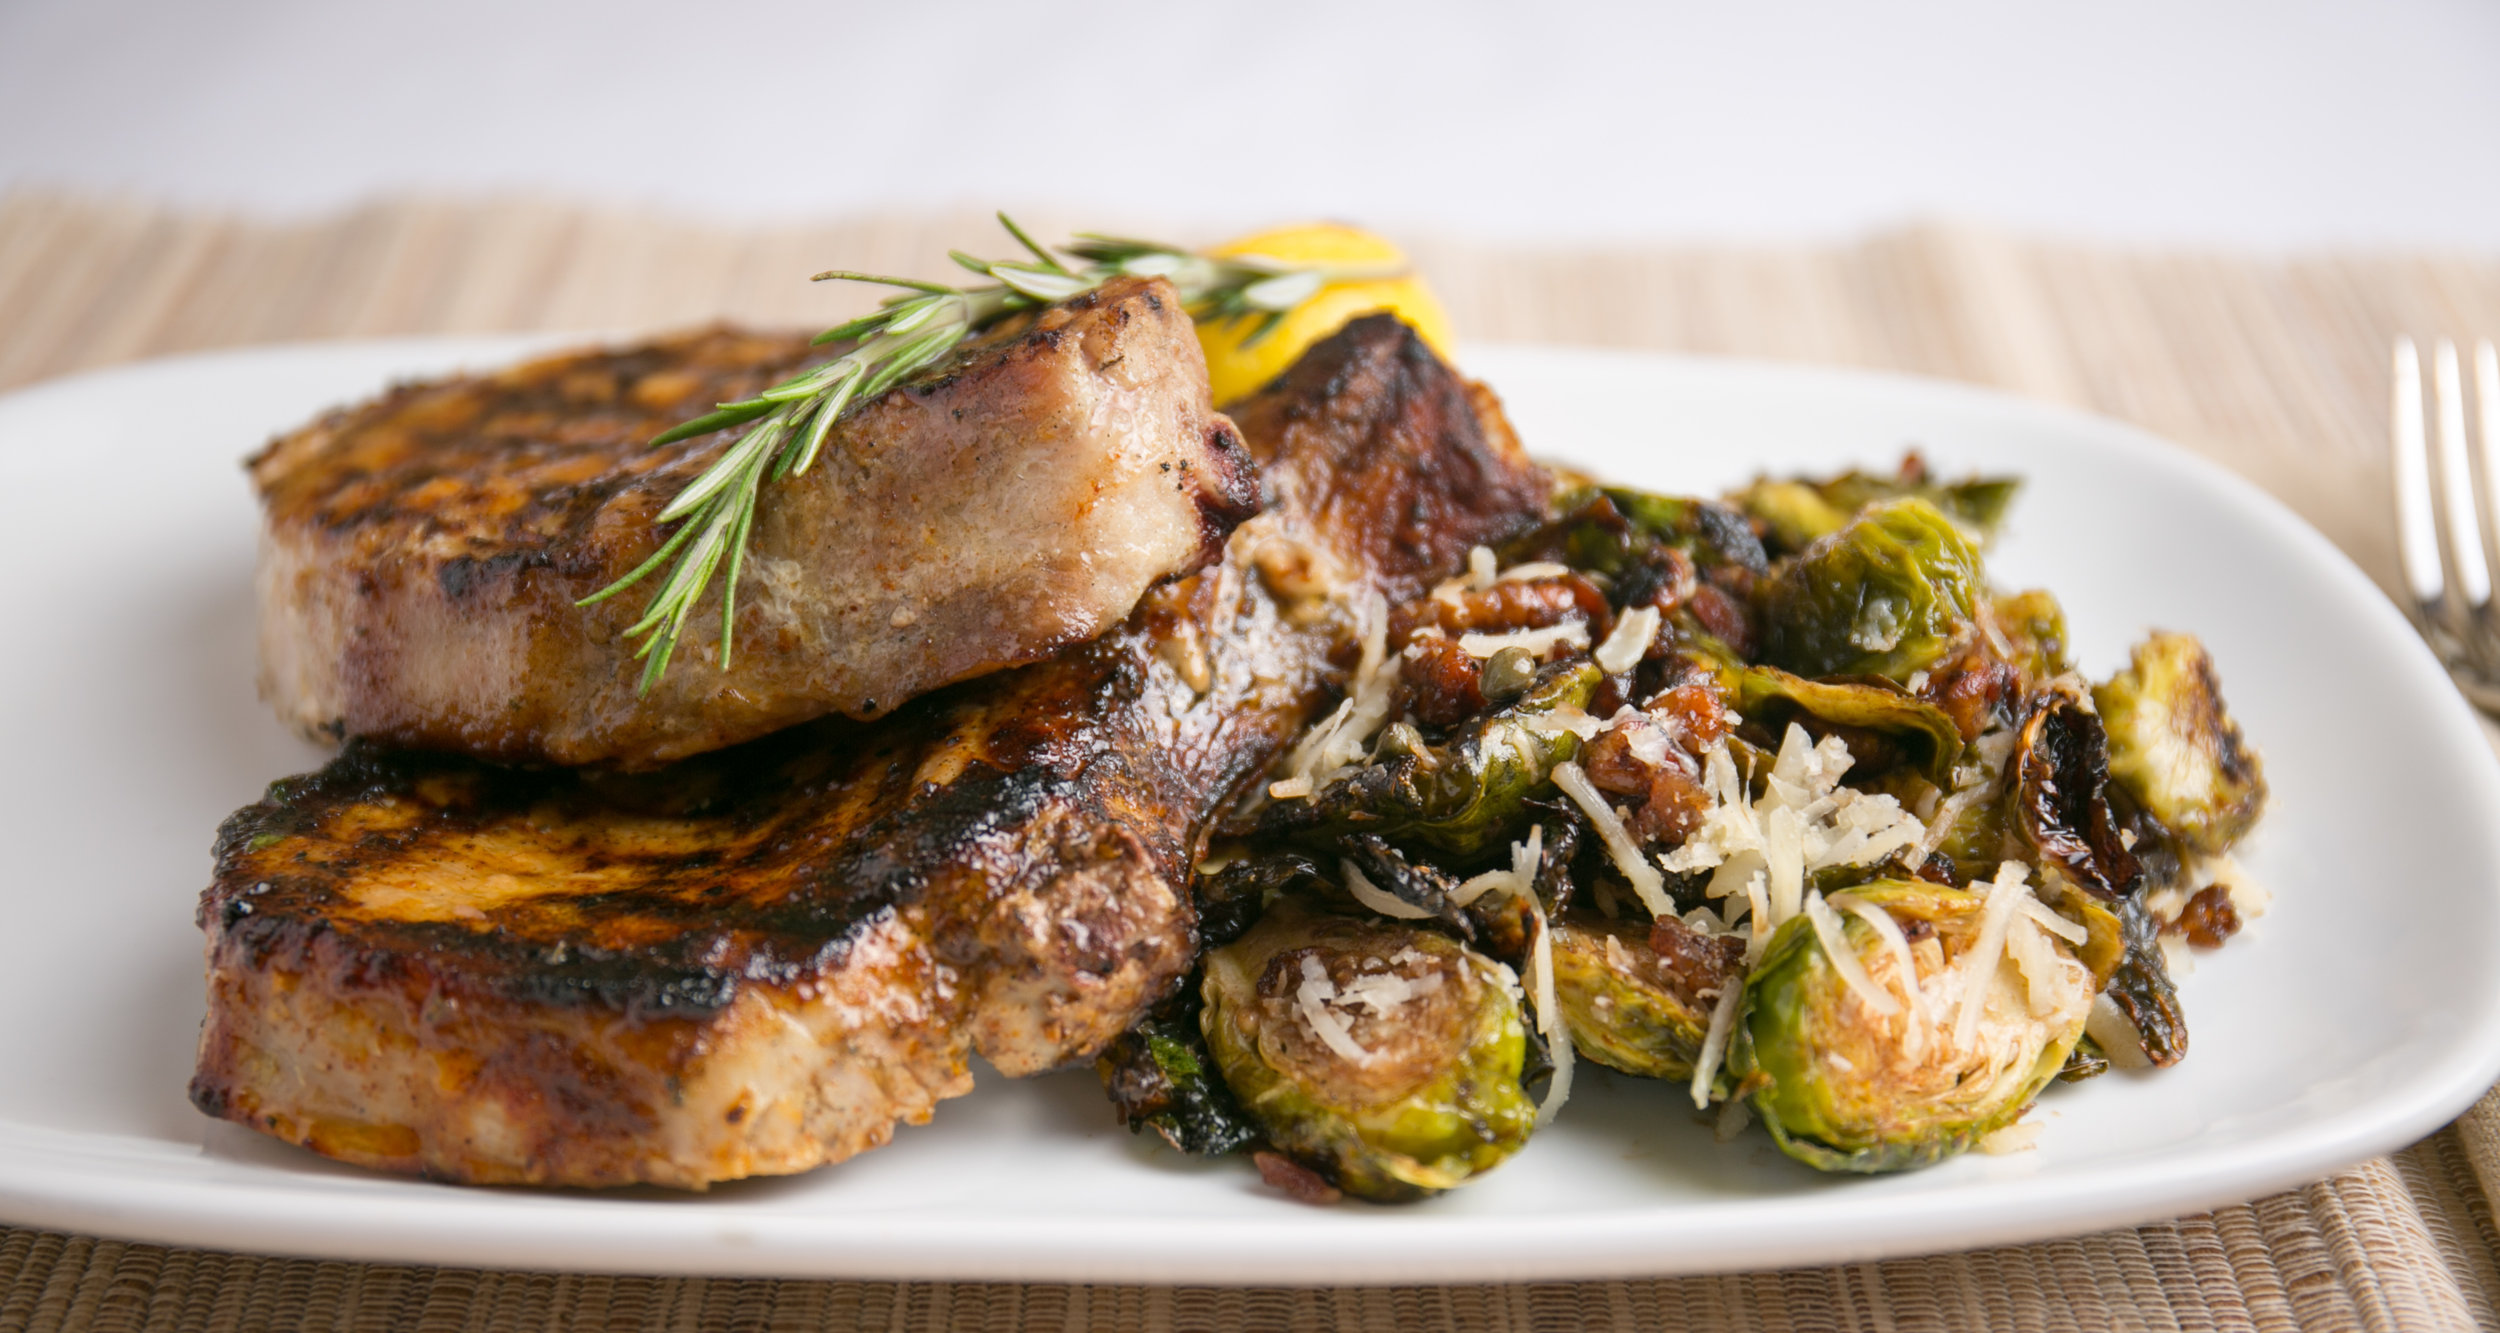 Brio Tuscan_Double Pork Chops with Brussel_03.jpg